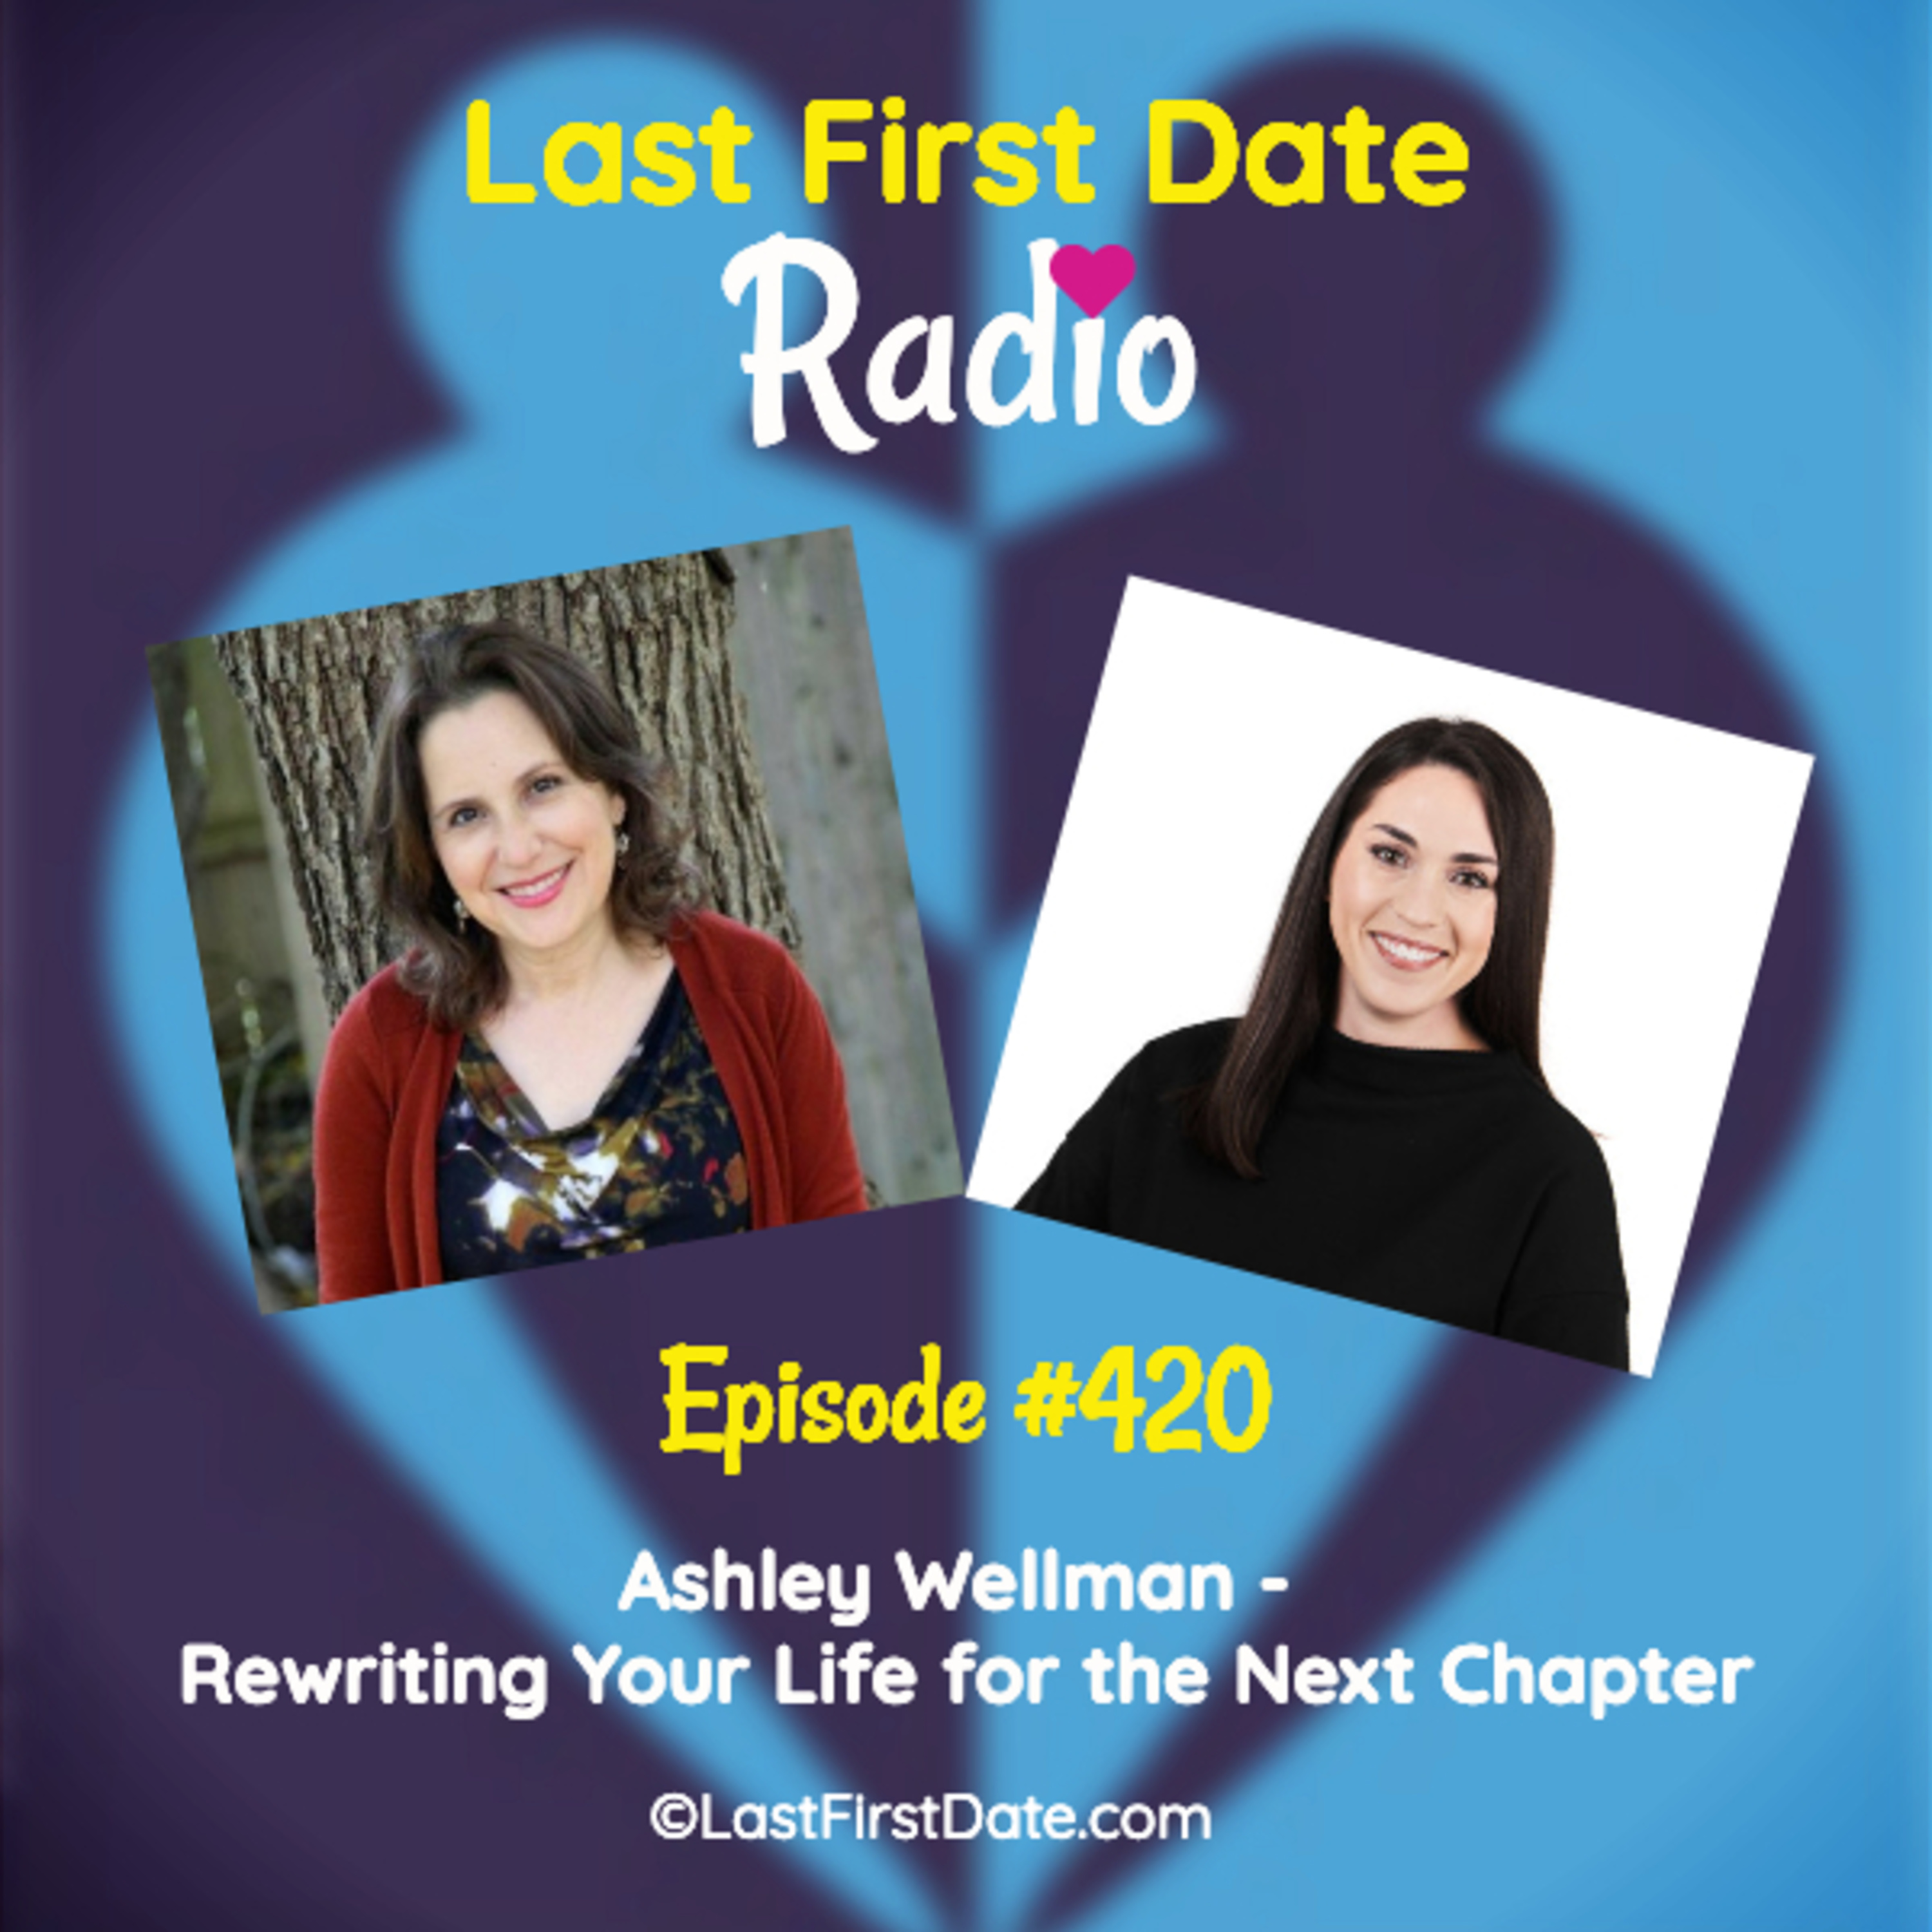 Last First Date Radio - EP 420: Ashley Wellman - Rewriting Your Life for the Next Chapter